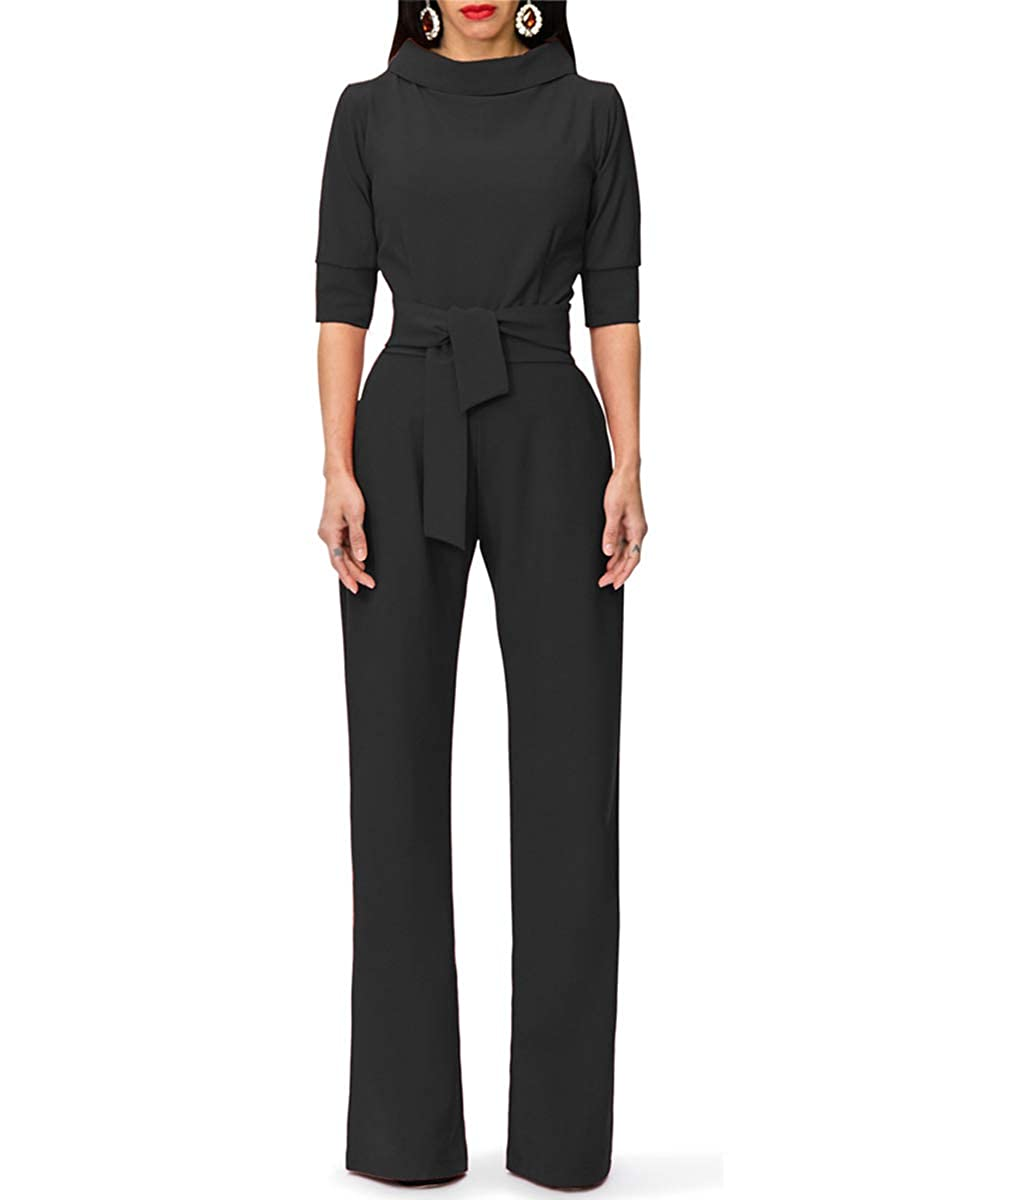 b52860784b0b This Elegent Jumpsuit has belt and a zipper on back